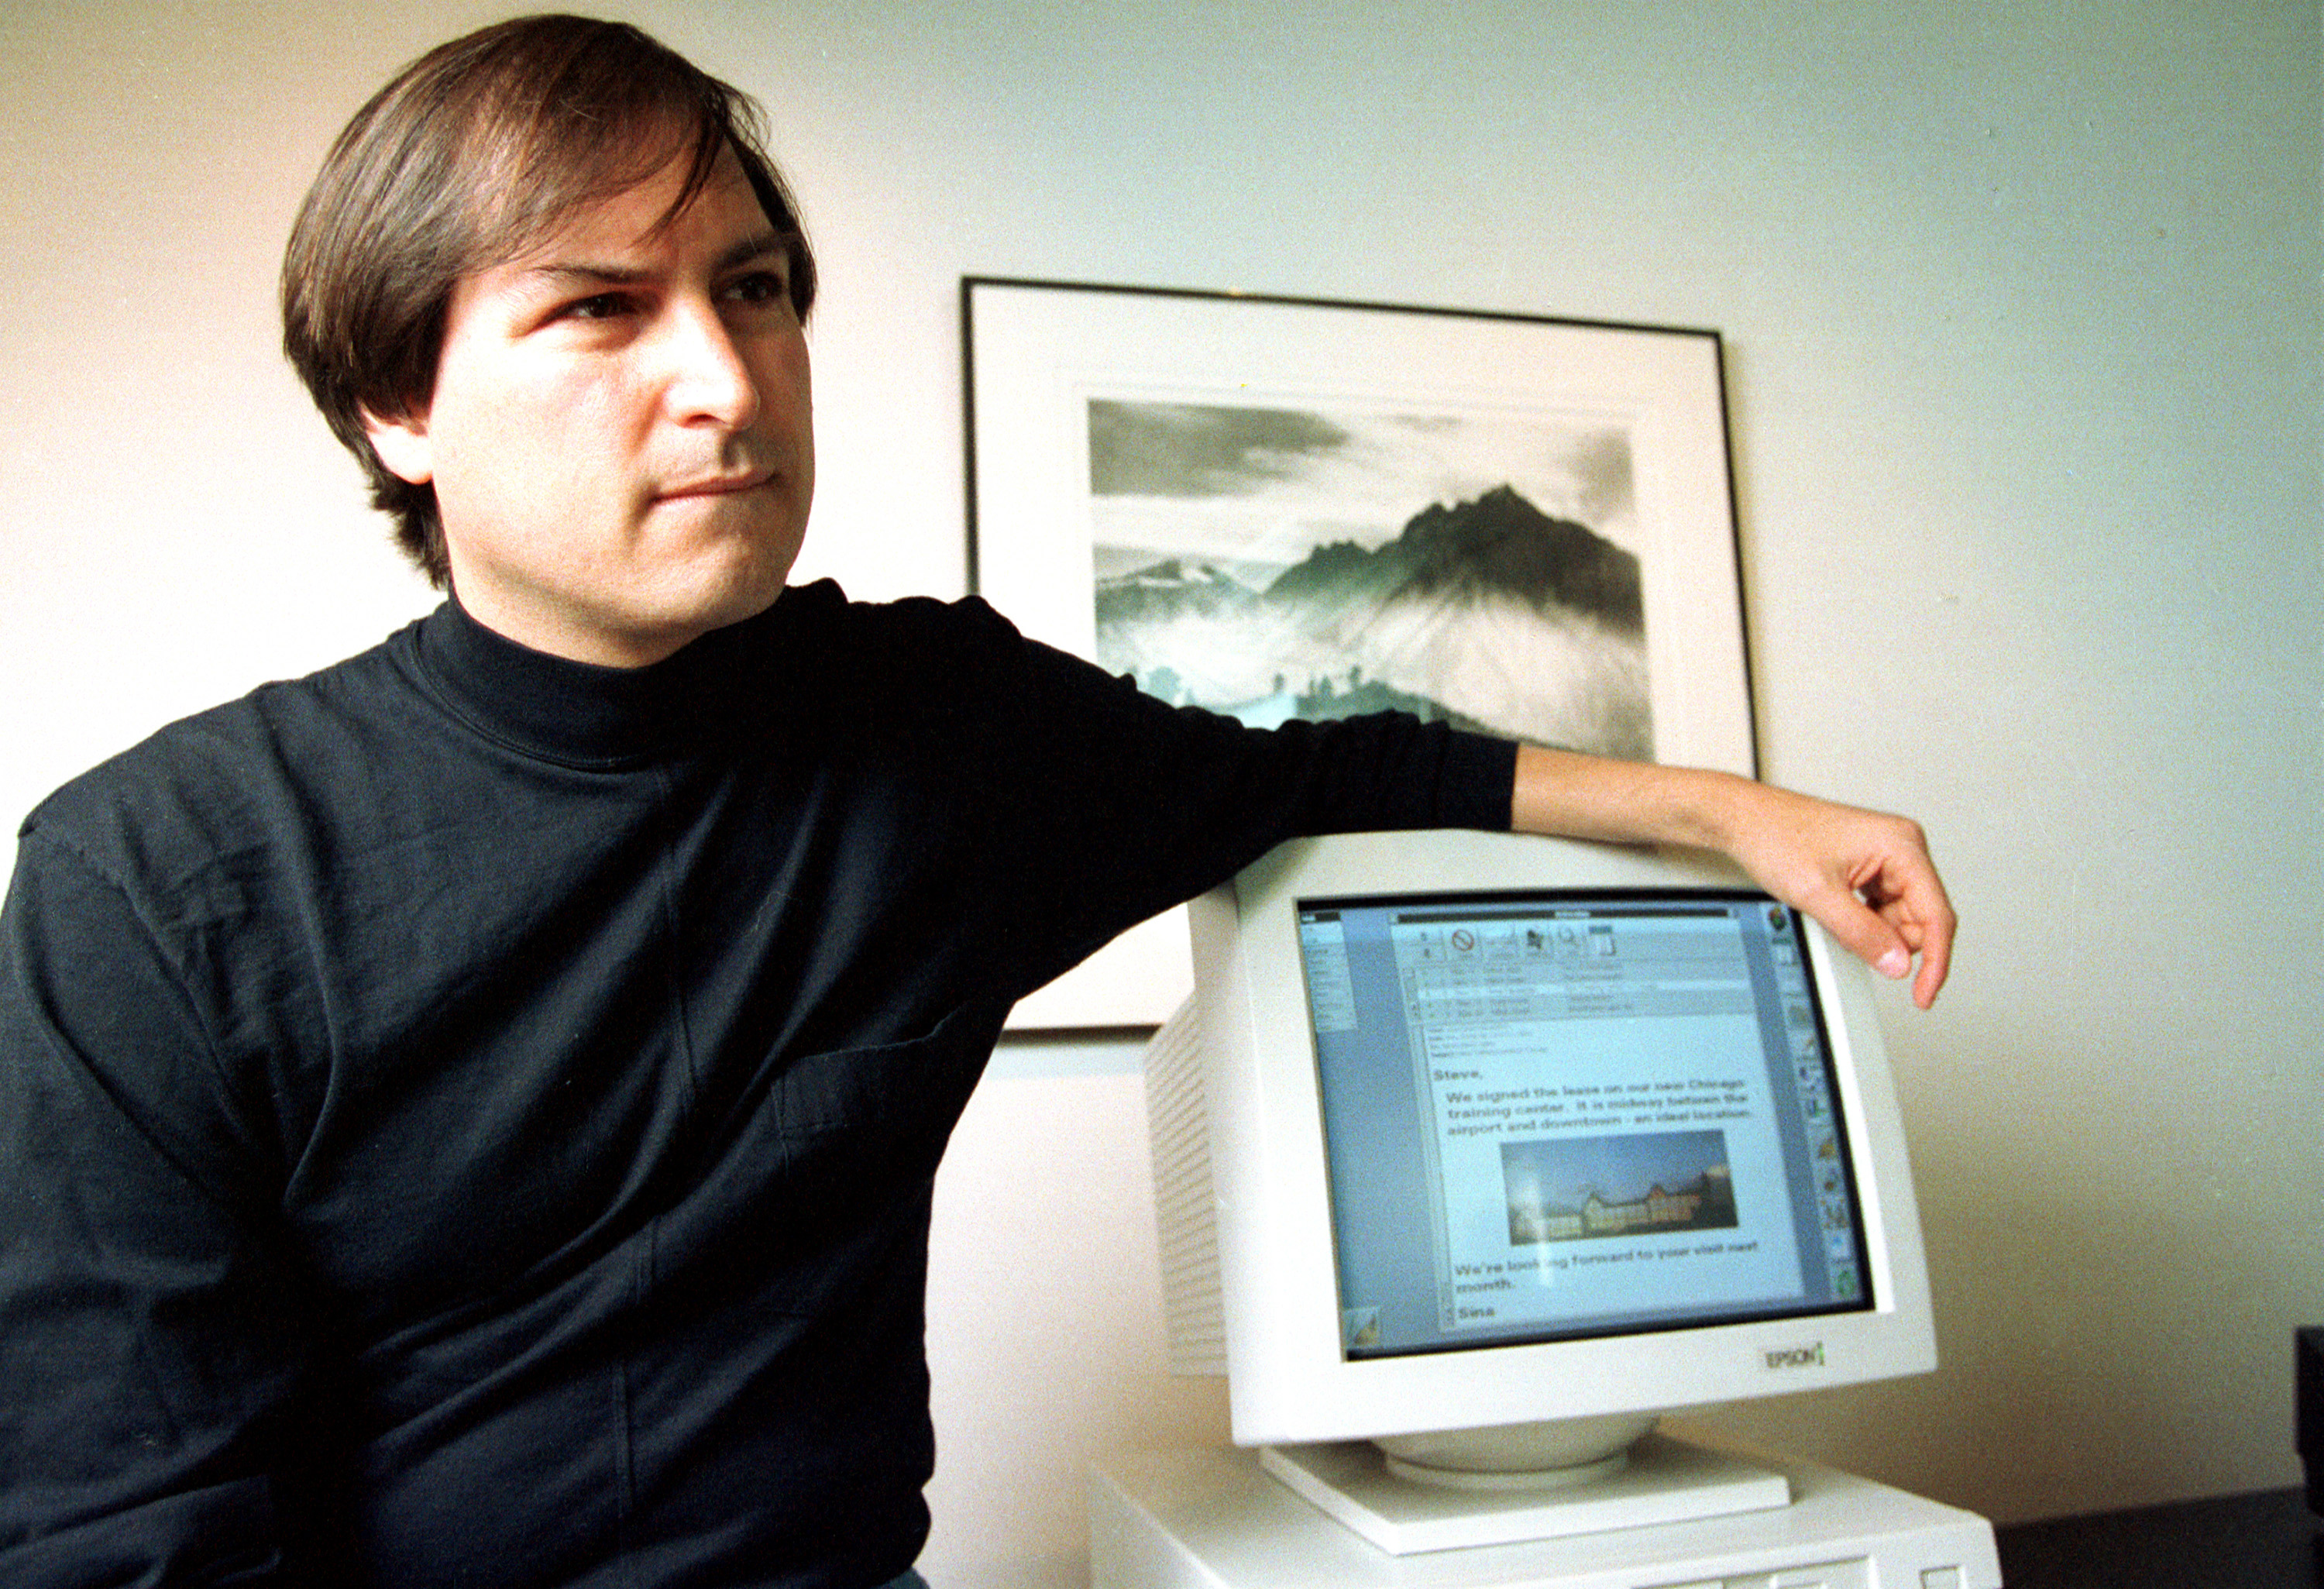 Steve Jobs Sold NeXT to Apple 20 Years Ago | Fortune